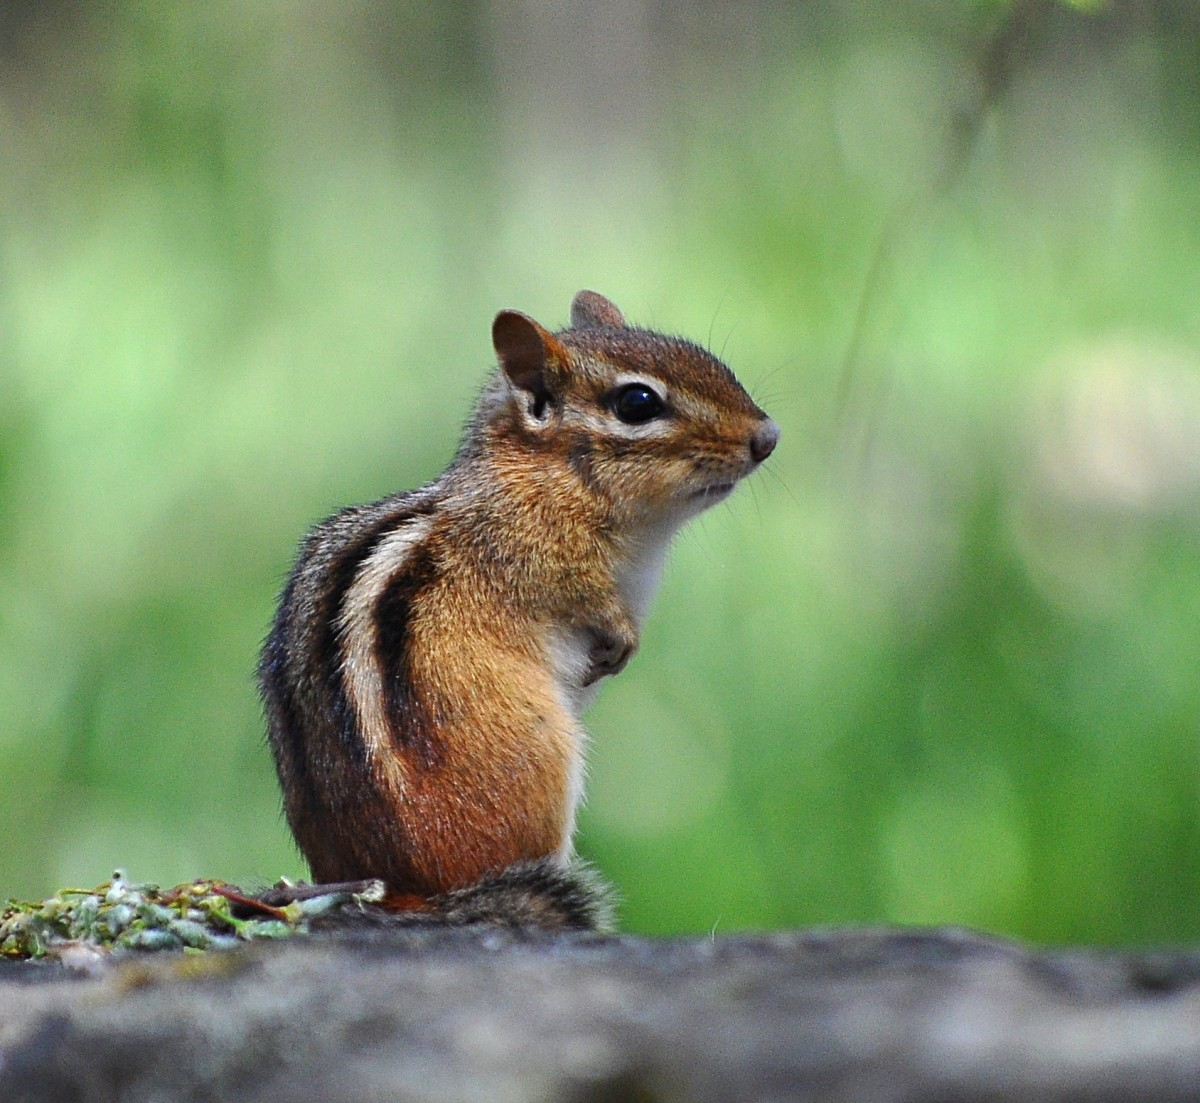 Chipmunks are adorable, until they eat their way through your wiring.